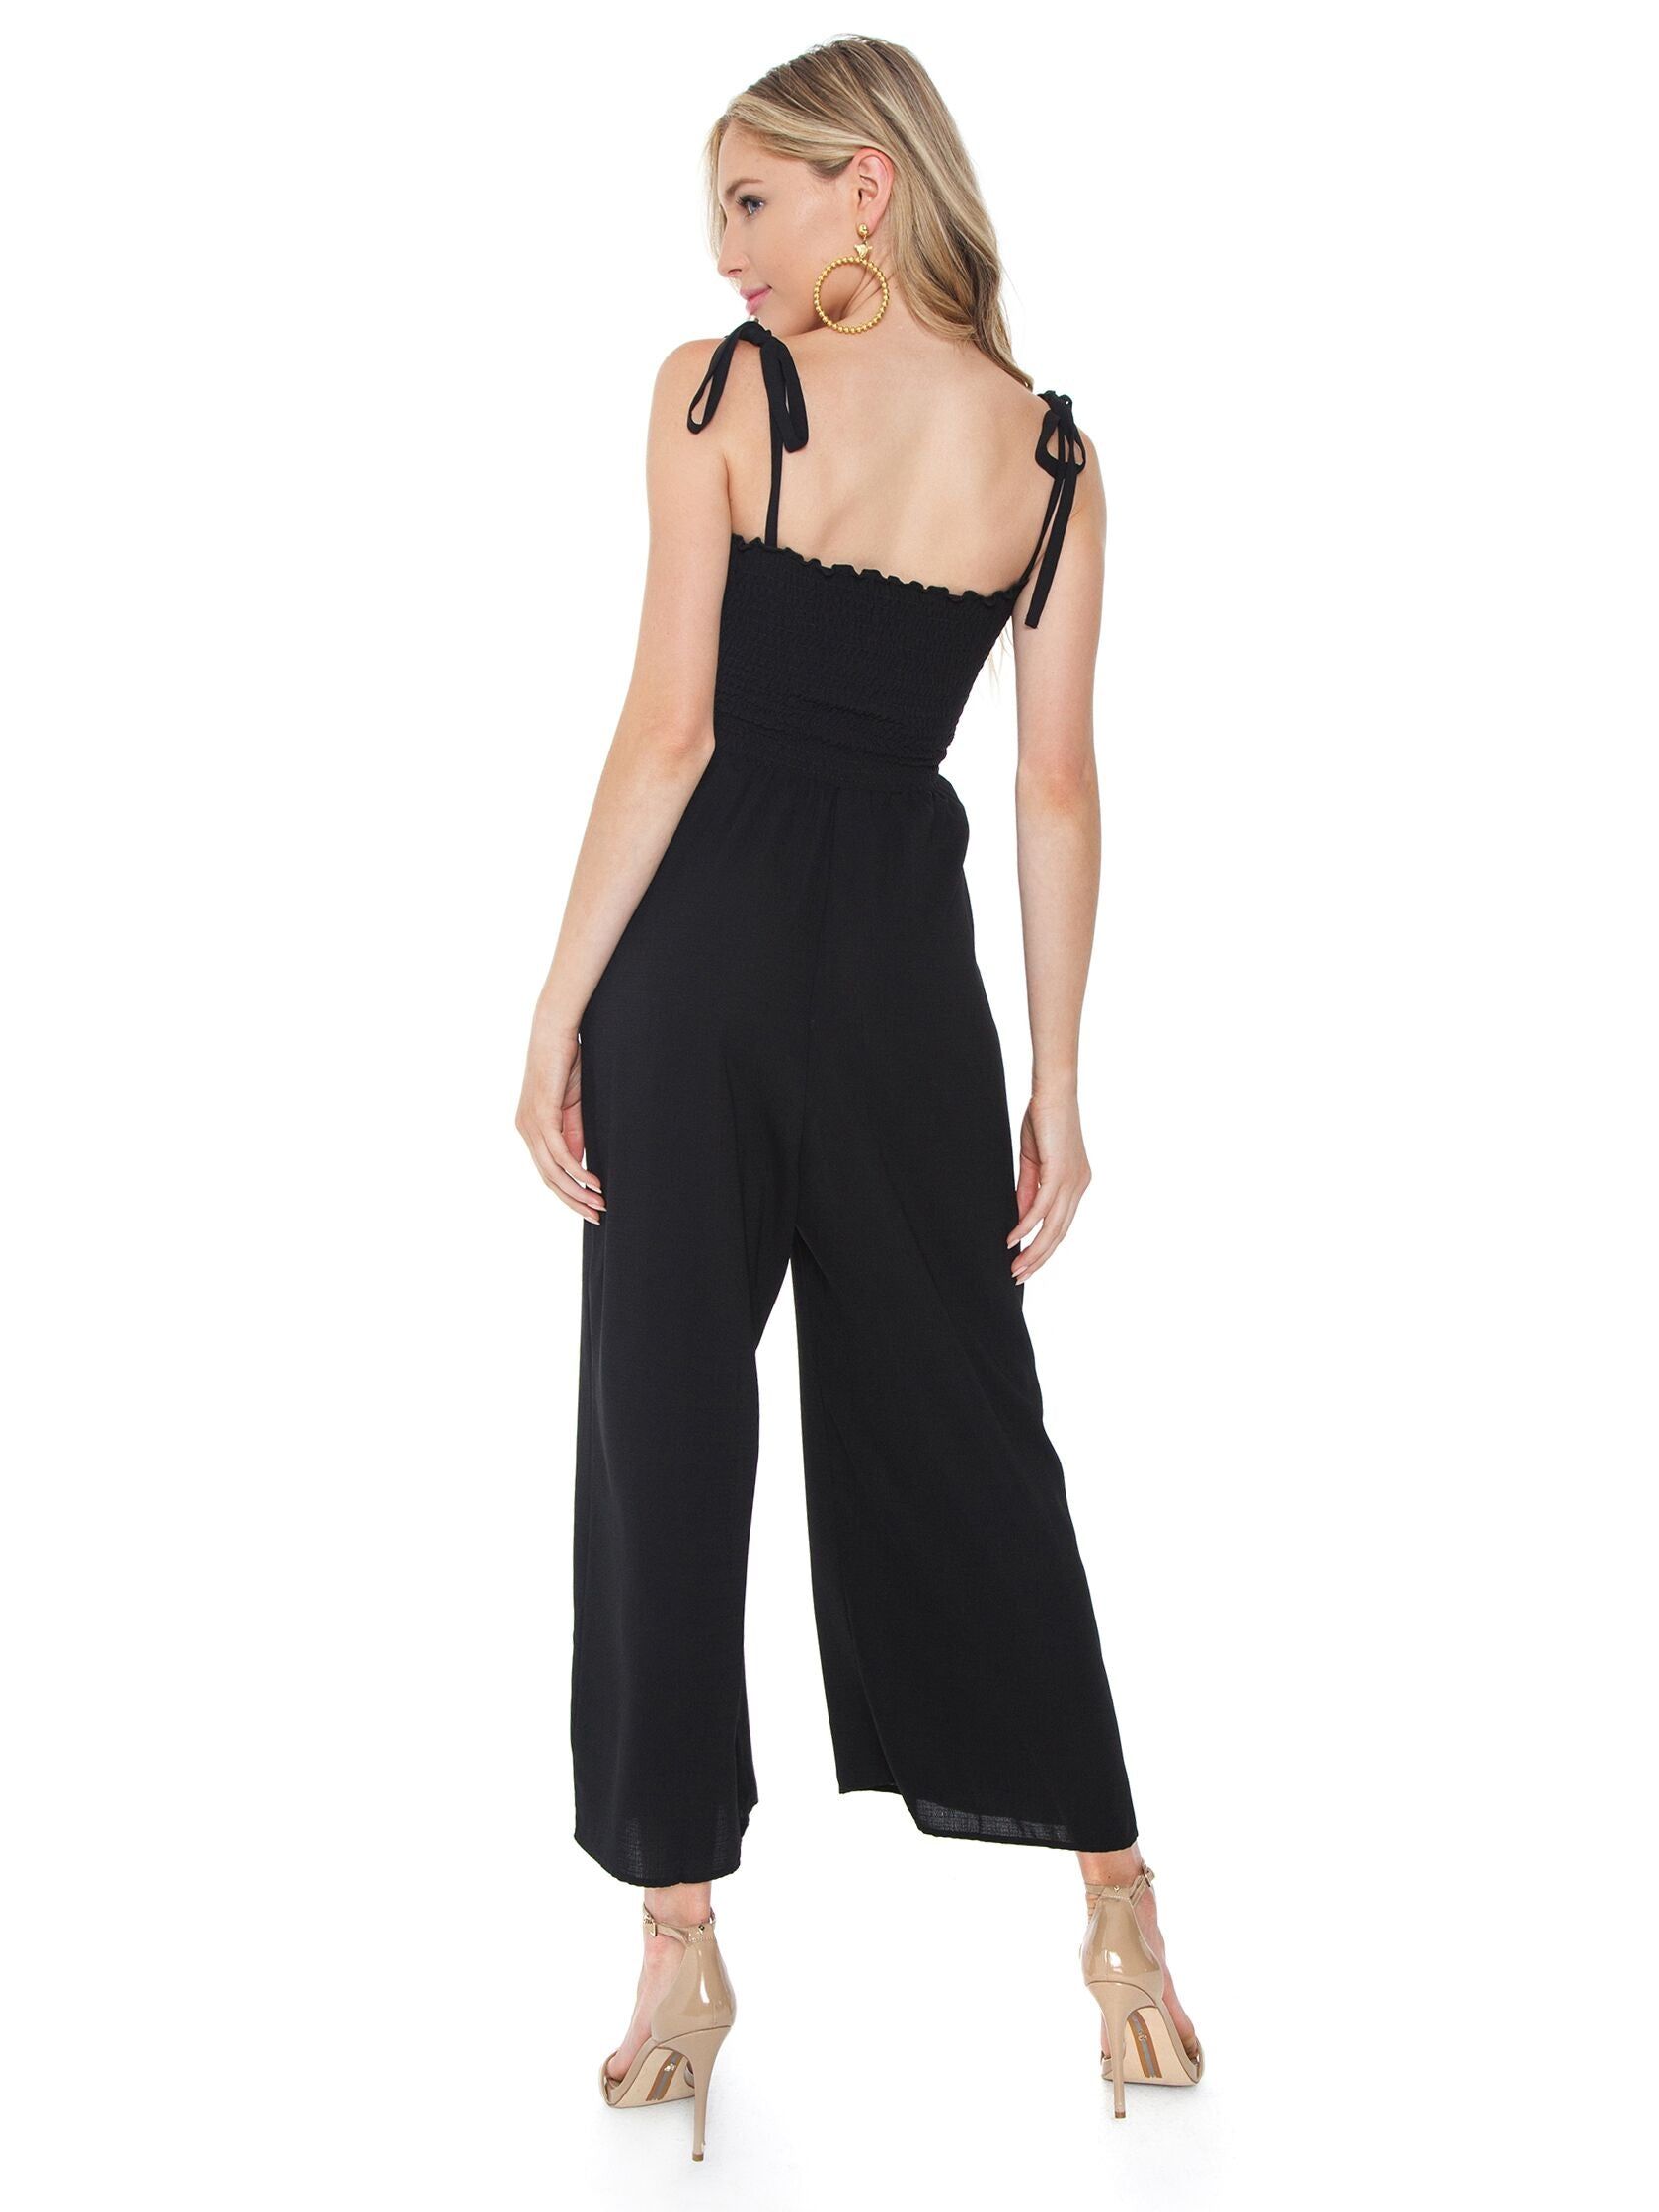 Women wearing a jumpsuit rental from Show Me Your Mumu called Parton Playsuit